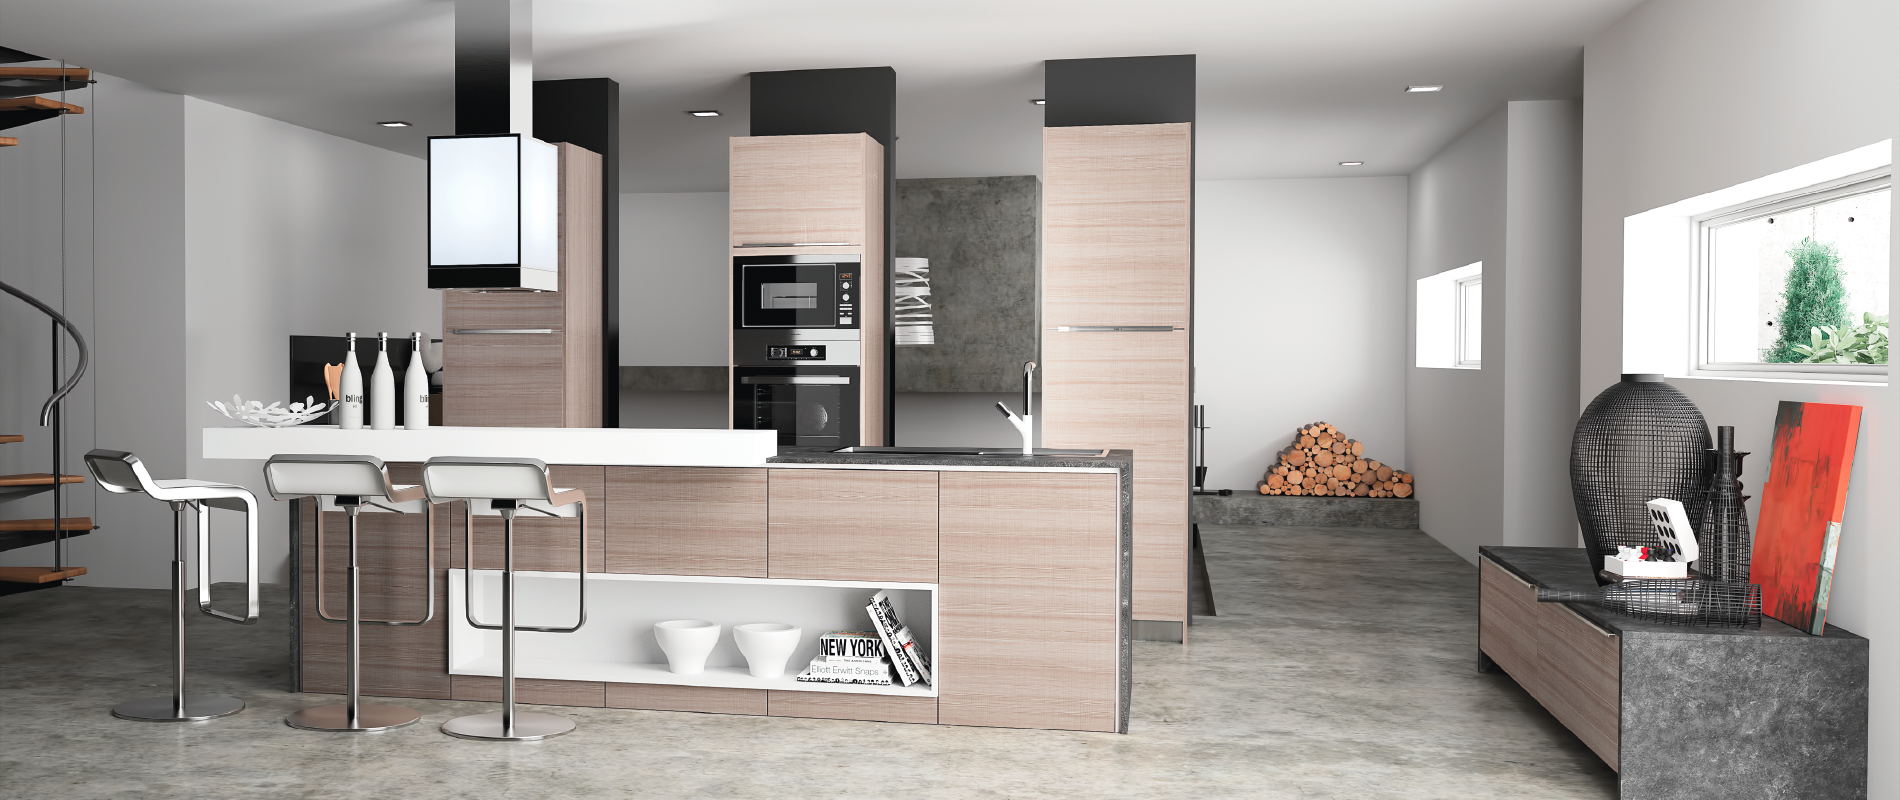 Cuisine contemporaine de qualit monza 2 haut de gamme for Cuisines contemporaines design